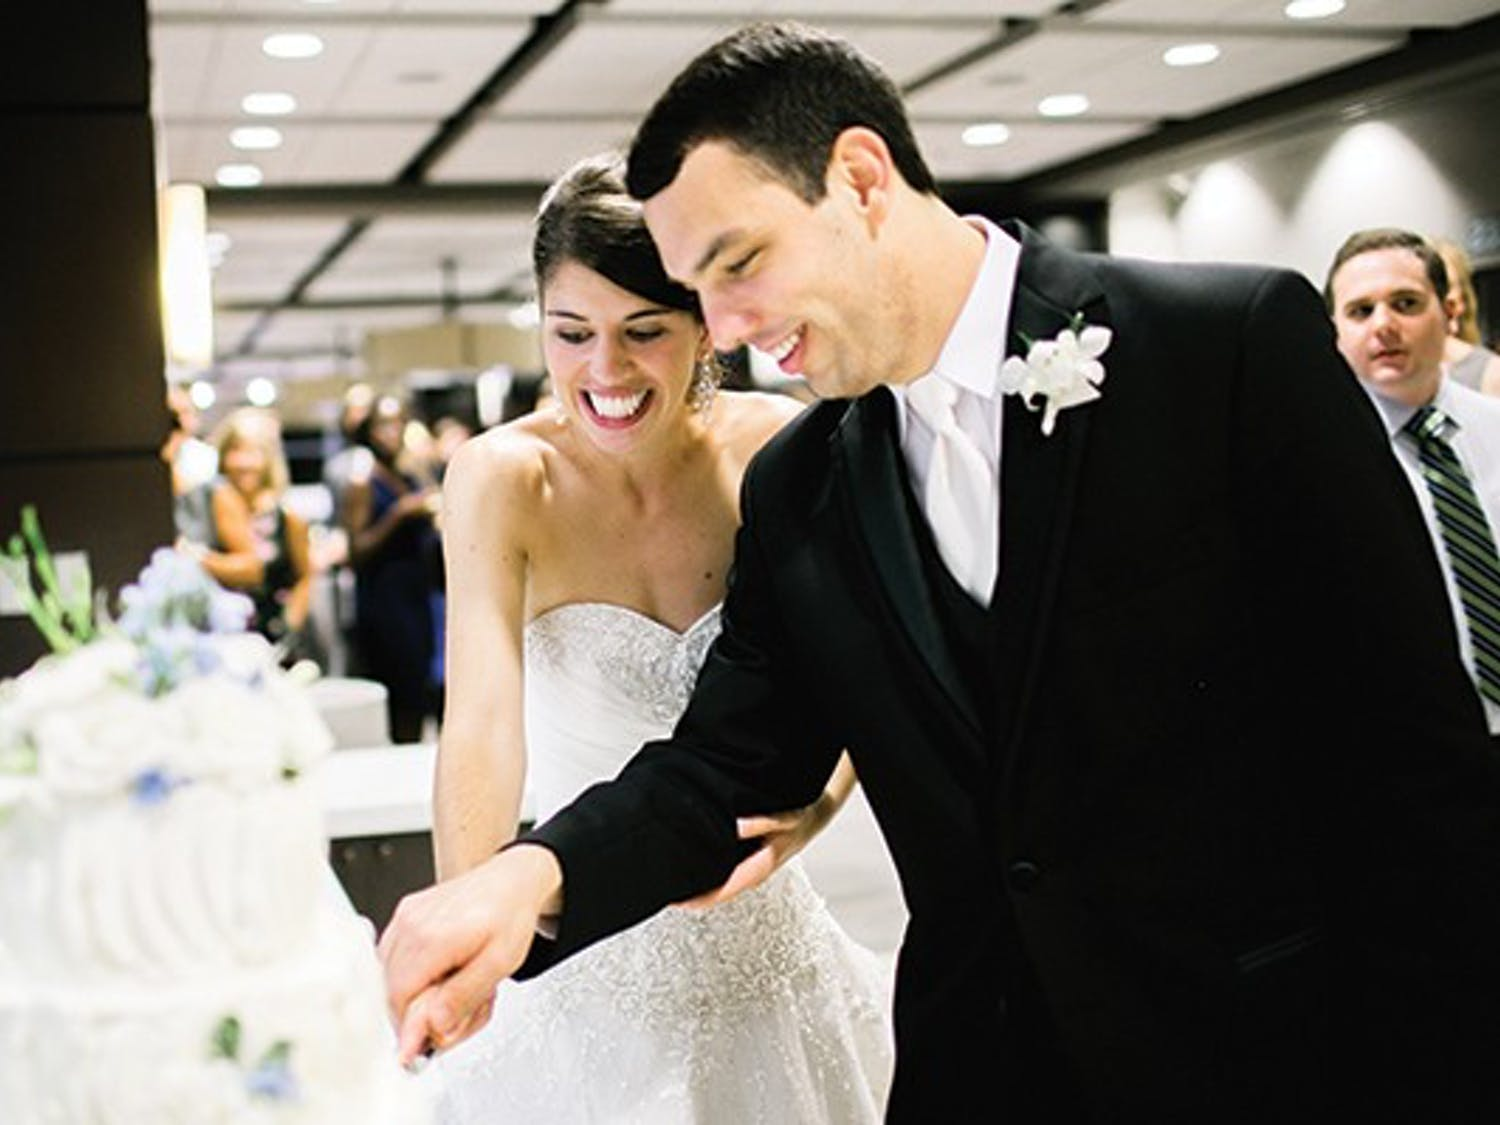 Shannon and Bryan Weynand got married in the Blue Zone in 2013.